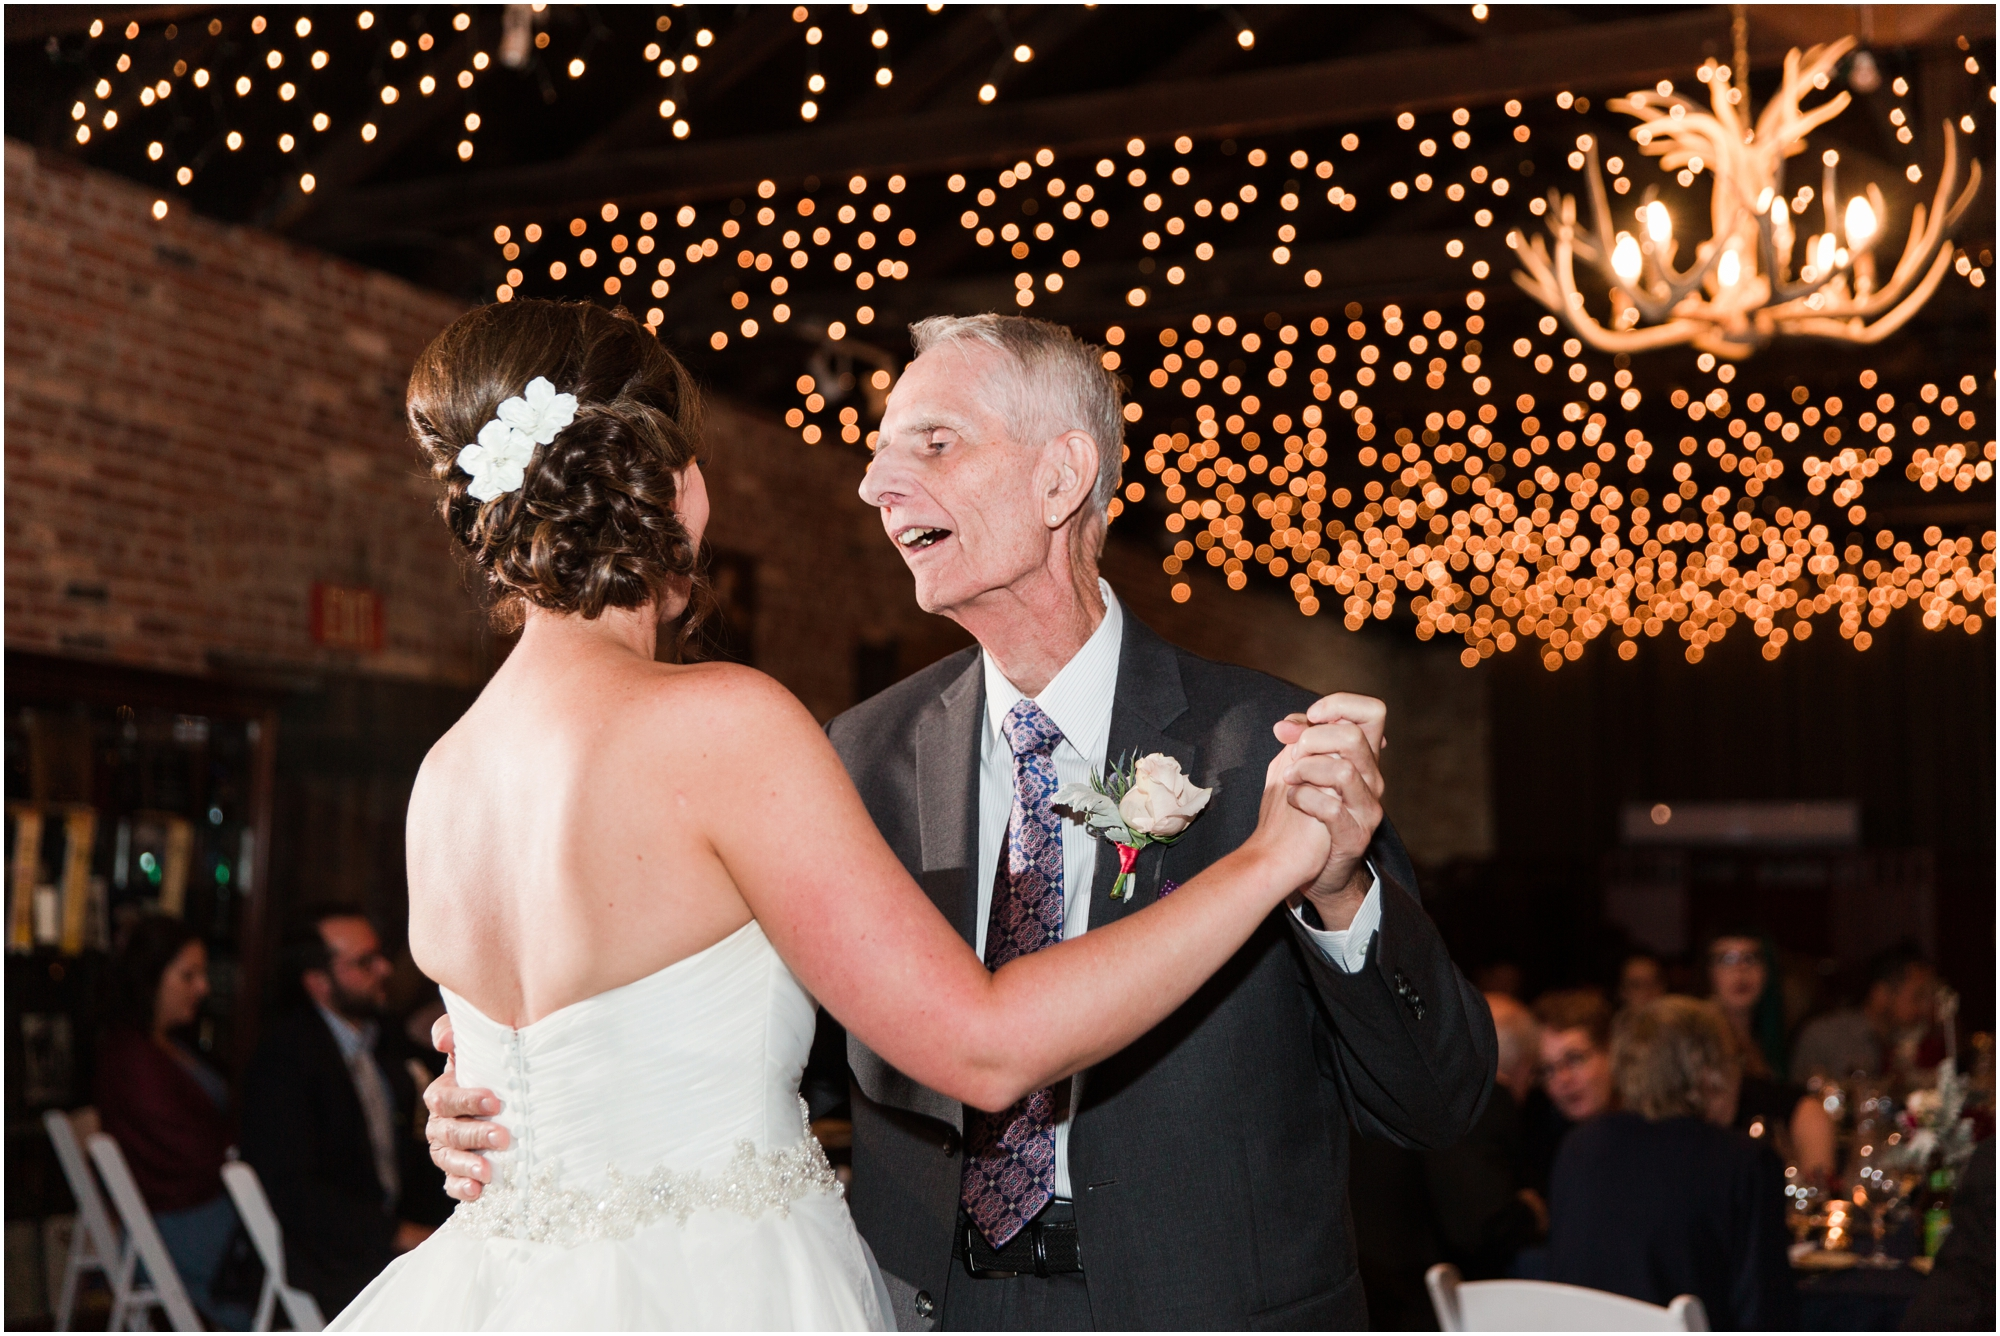 Picchetti Winery wedding pictures by Briana Calderon Photography_0504.jpg